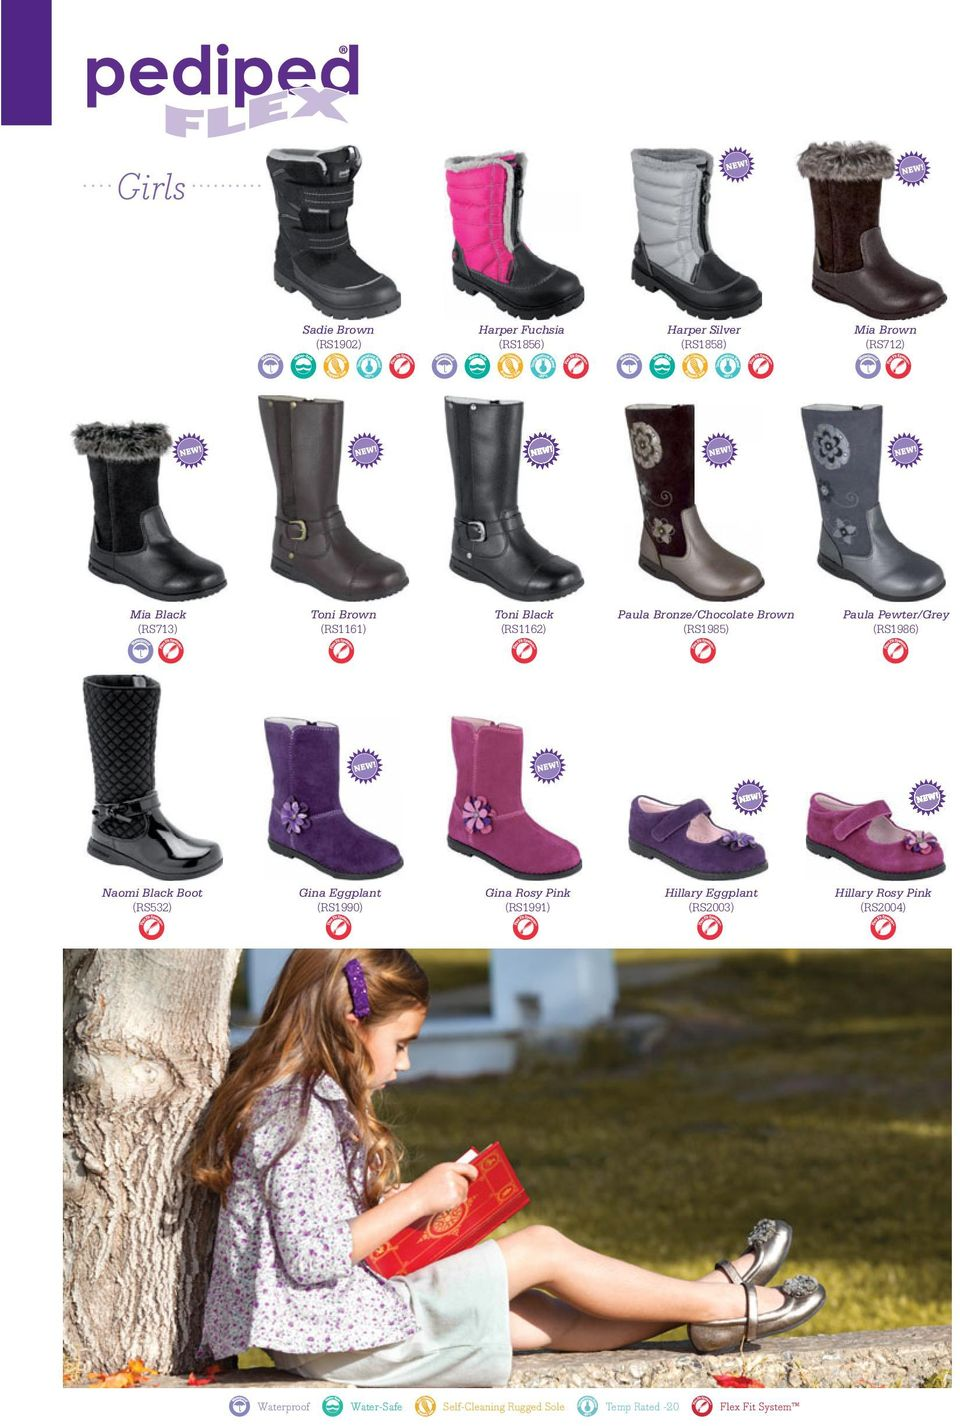 (RS1986) Naomi Black Boot (RS532) Gina Eggplant (RS1990) Gina Rosy Pink (RS1991) Hillary Eggplant